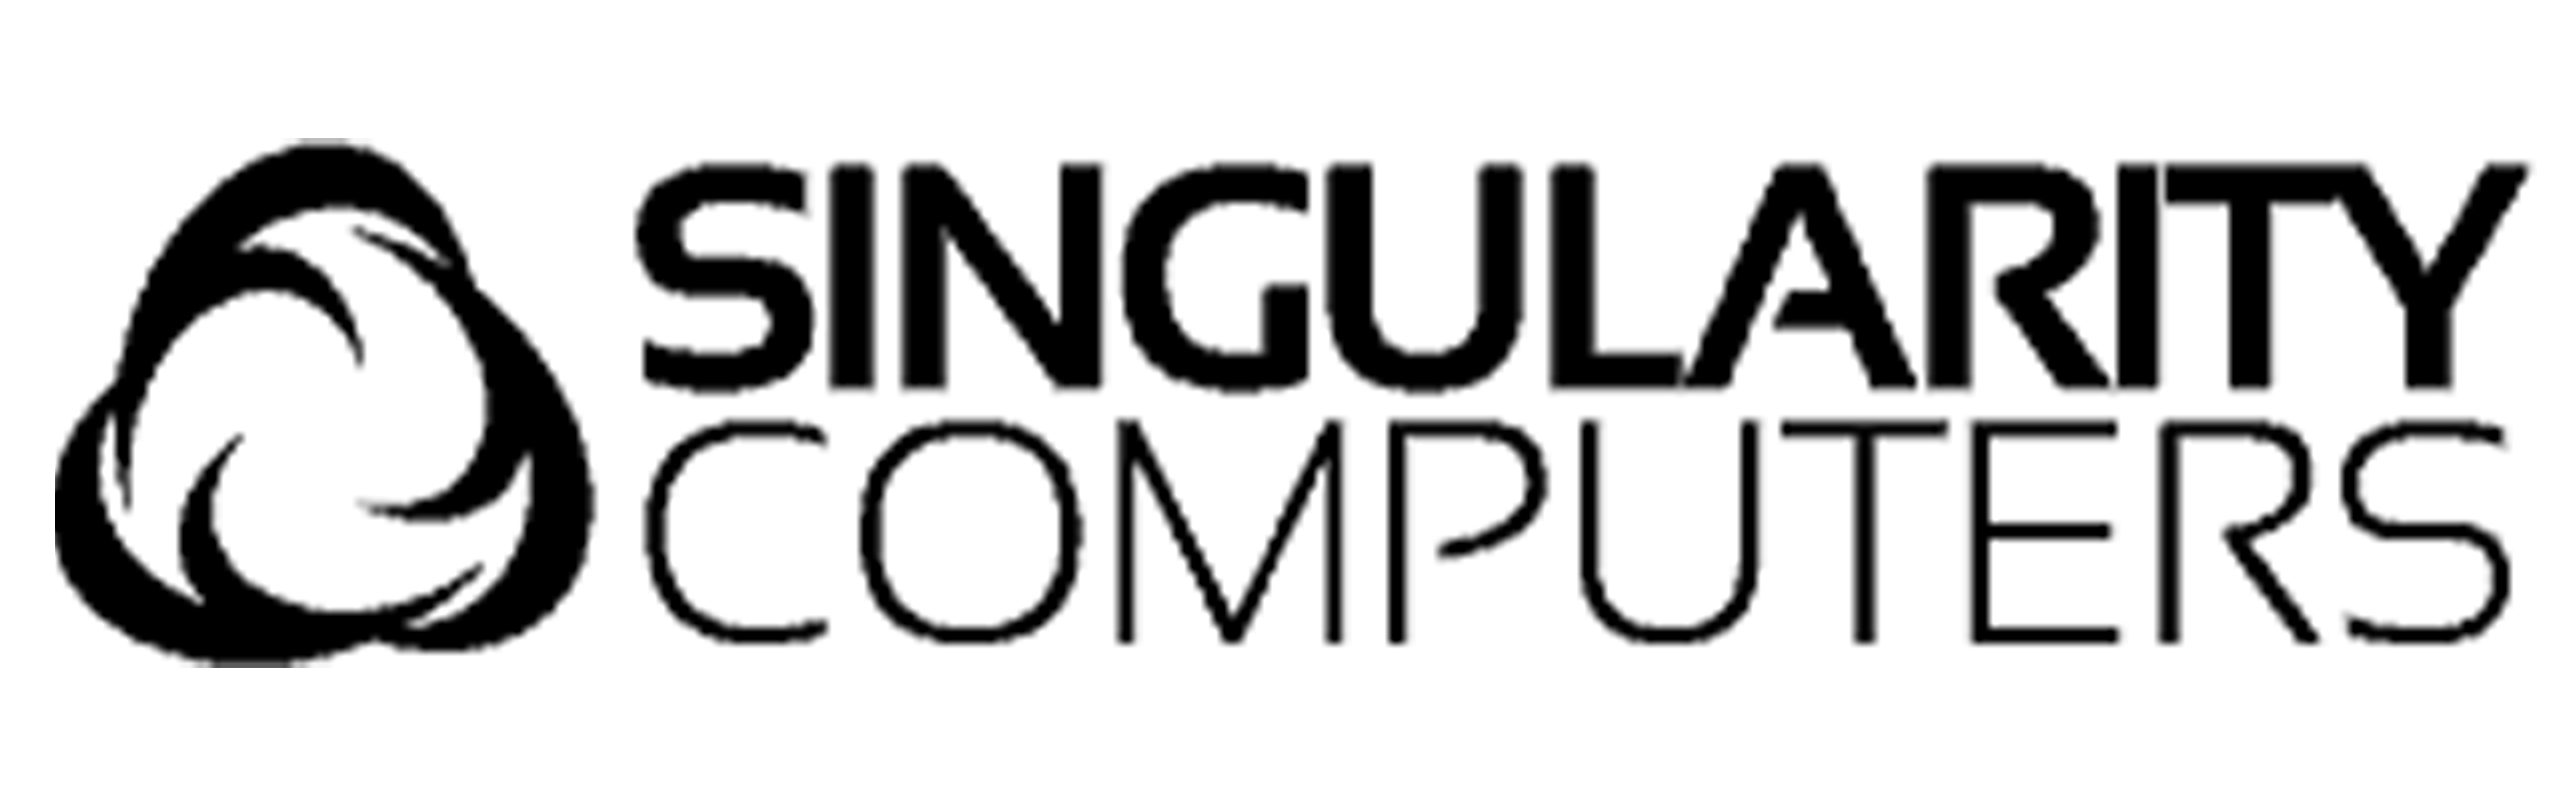 Singularity Computers